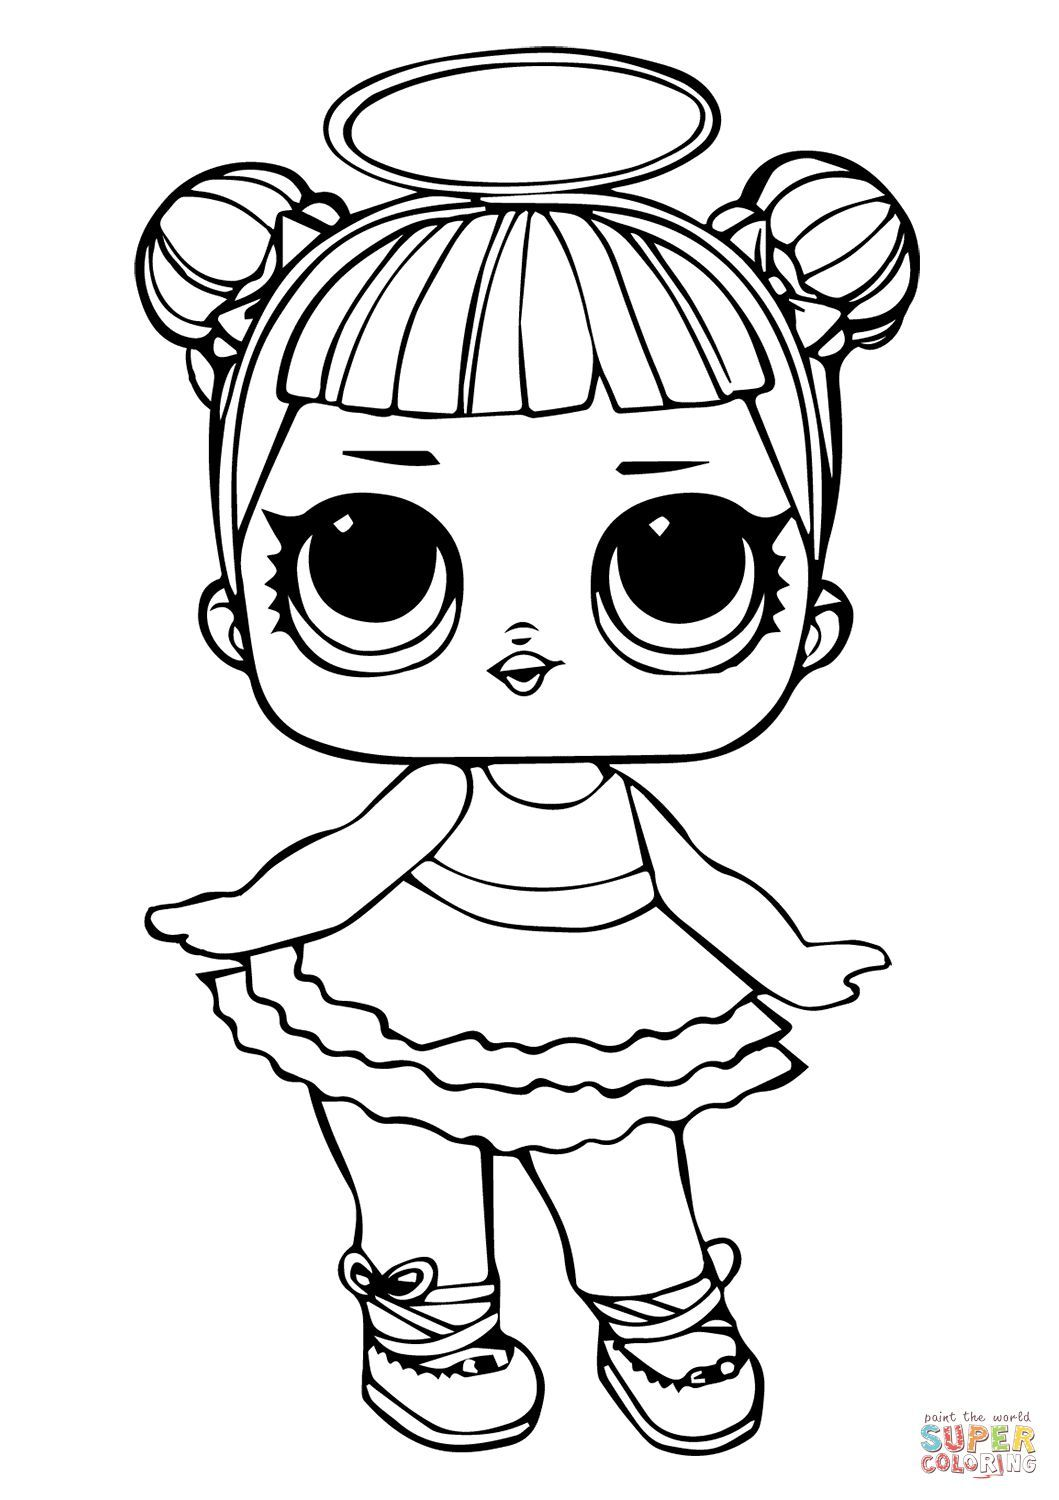 Lol Doll Coloring Pages Supercoloring Super Coloring Pages Princess Coloring Pages Lol Dolls